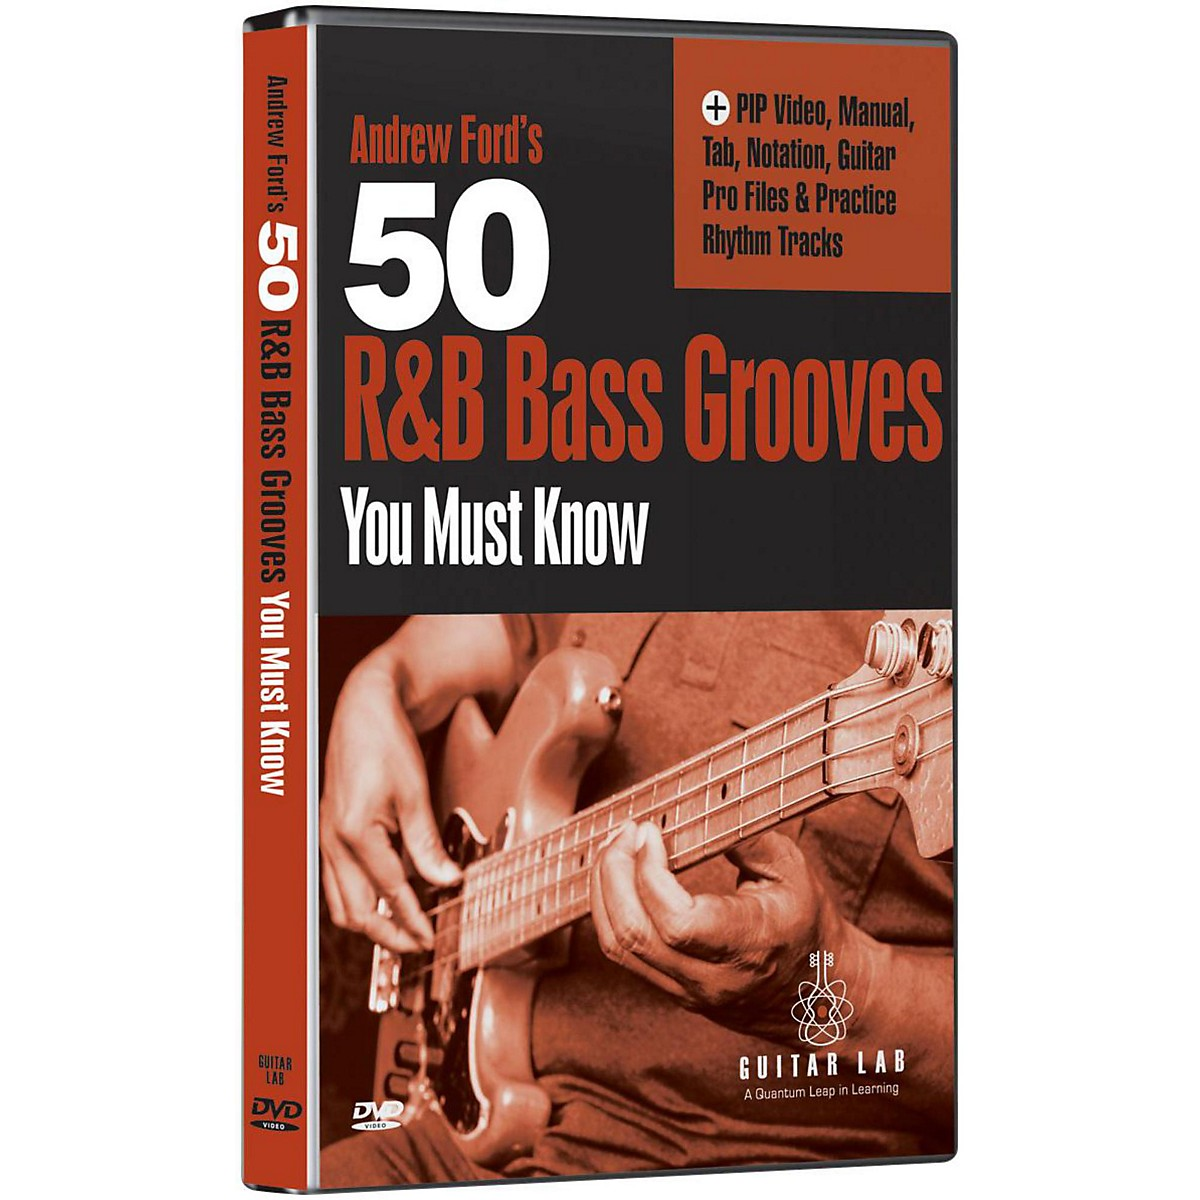 eMedia 50 R&B Bass Grooves You Must Know DVD